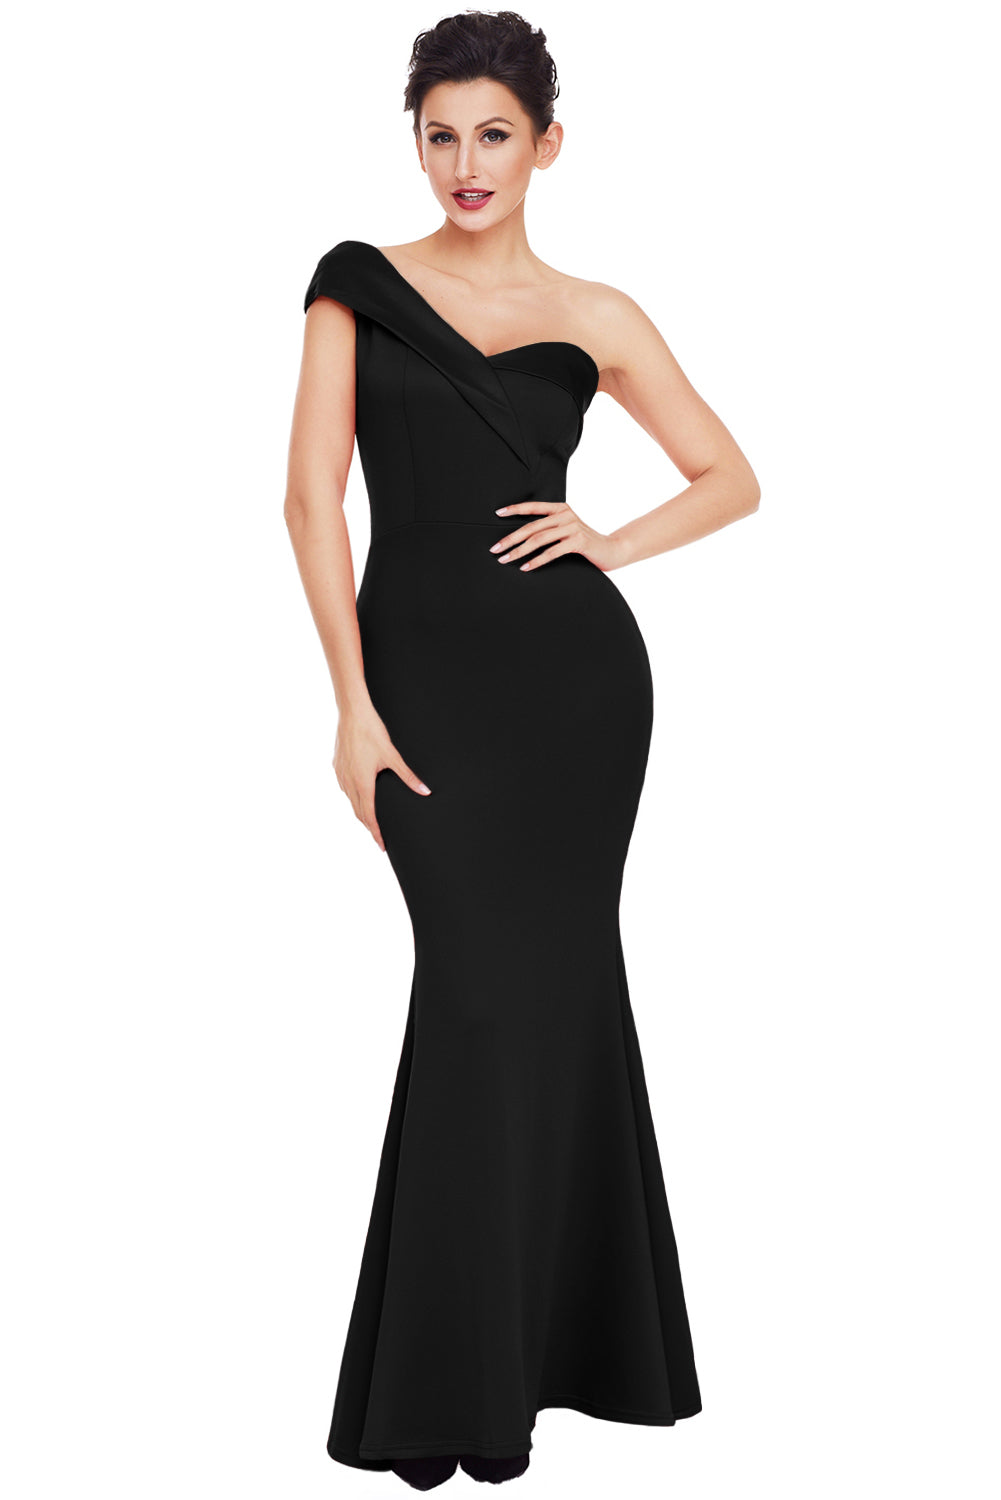 Her Elegant Fashion Black Sexy One Shoulder Beautiful Ponte Gown